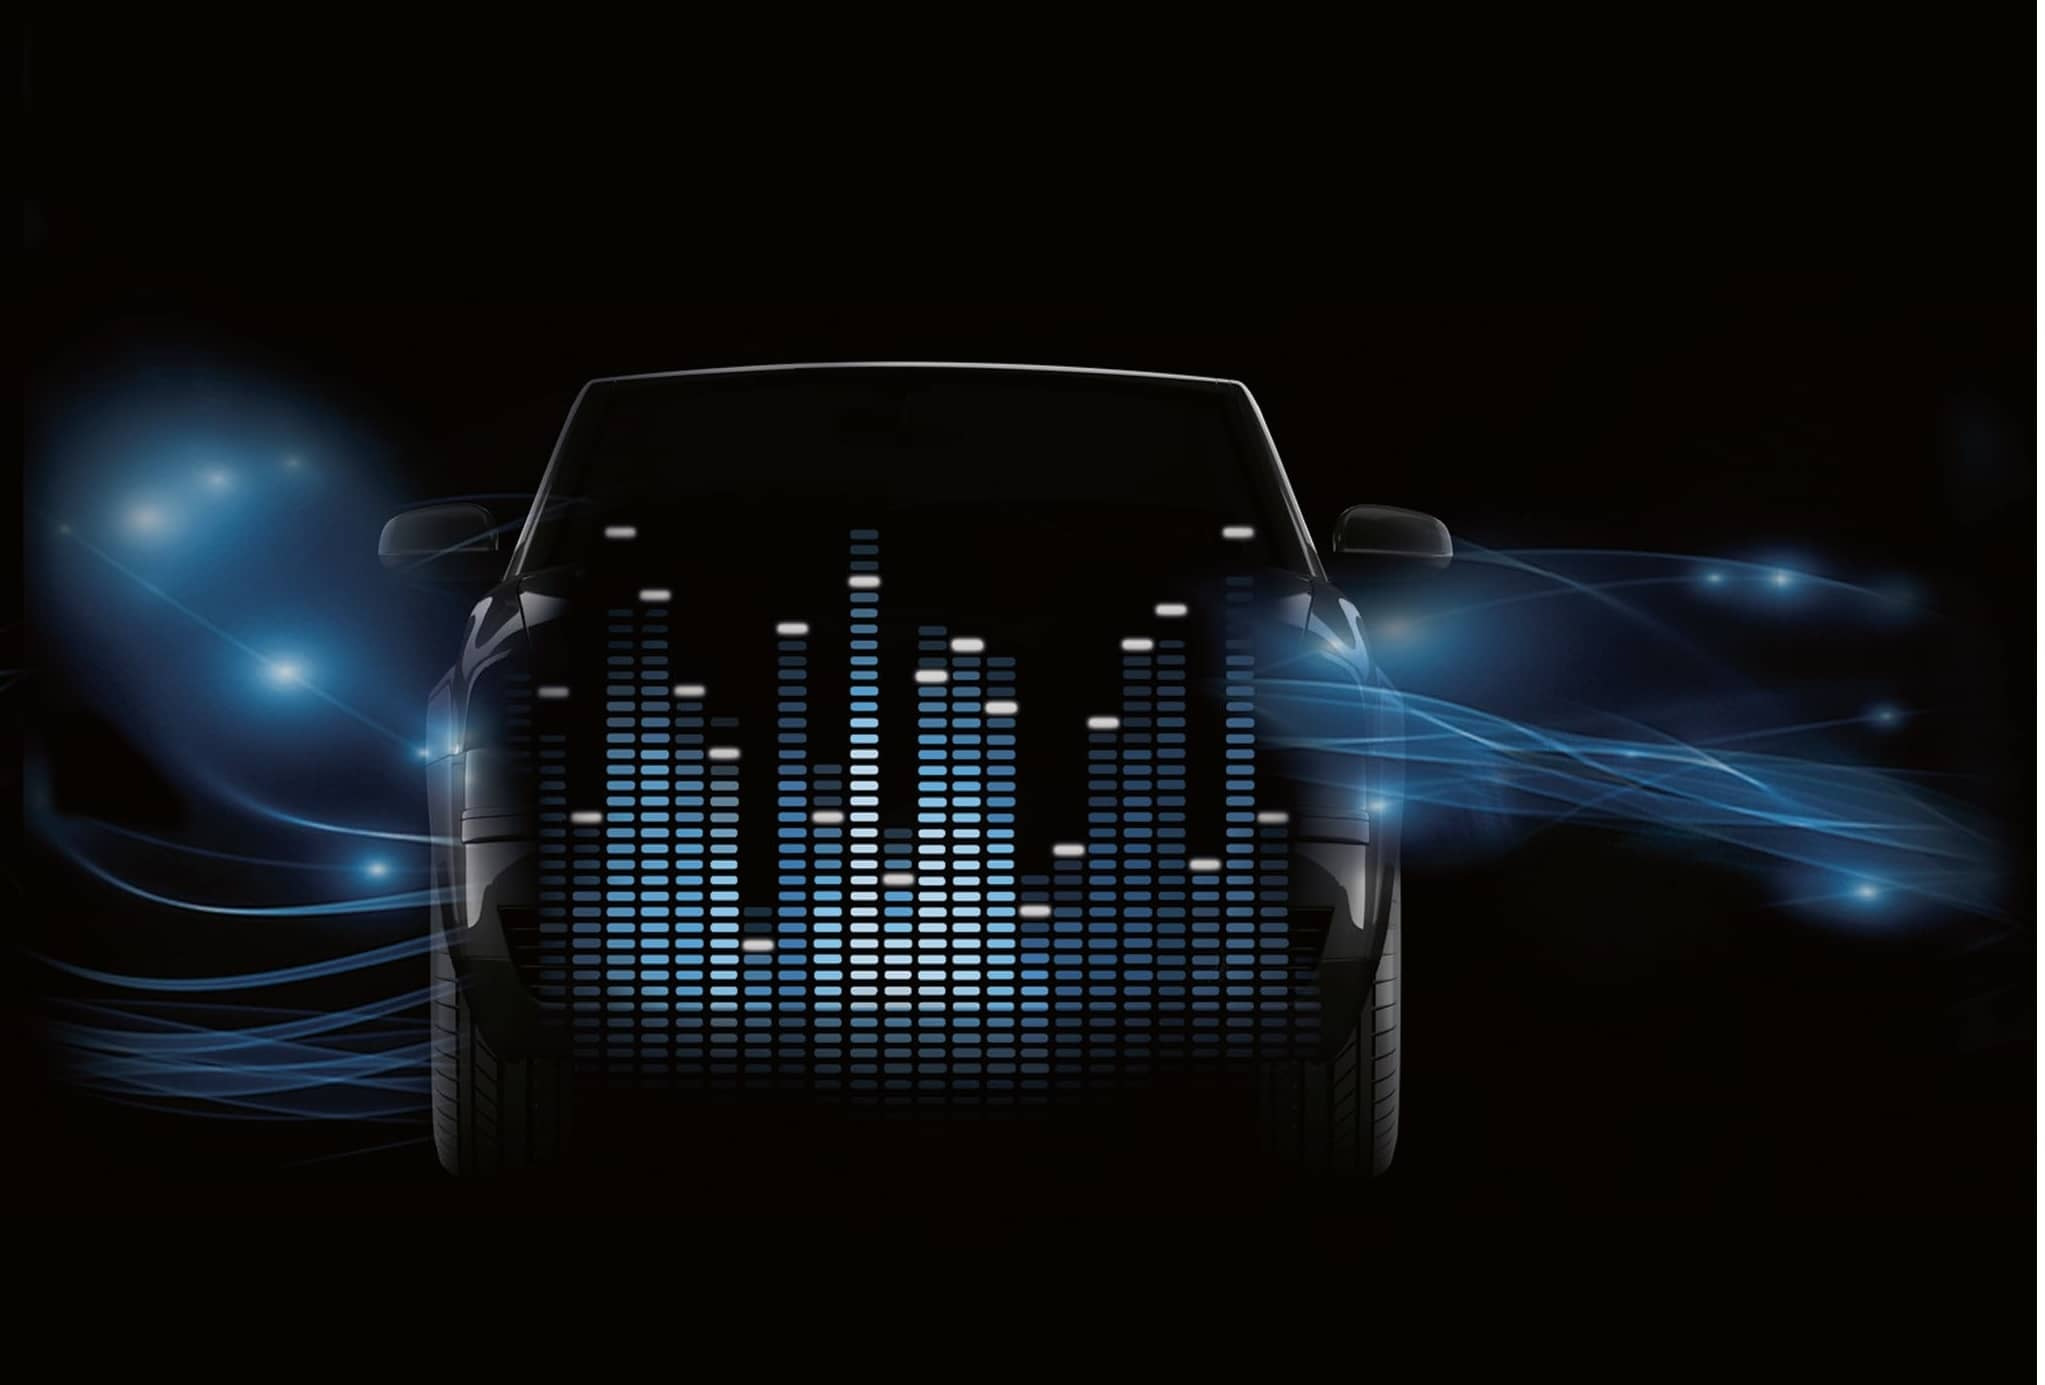 Sound Generation For Enhanced Road Safety